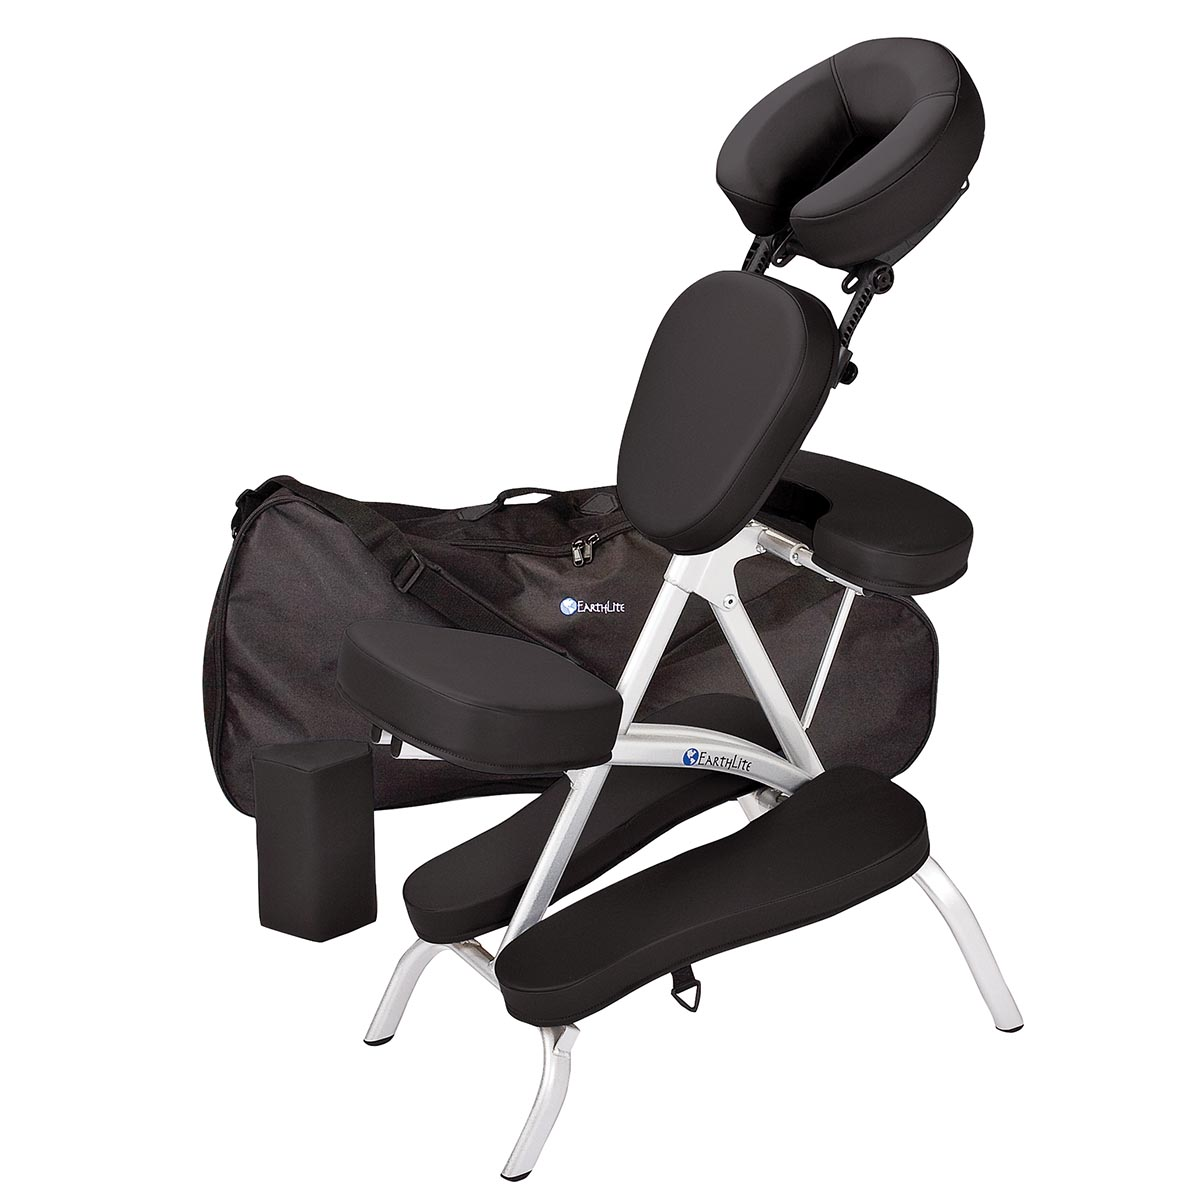 massage chair earthlite folding butterfly vortex chairs